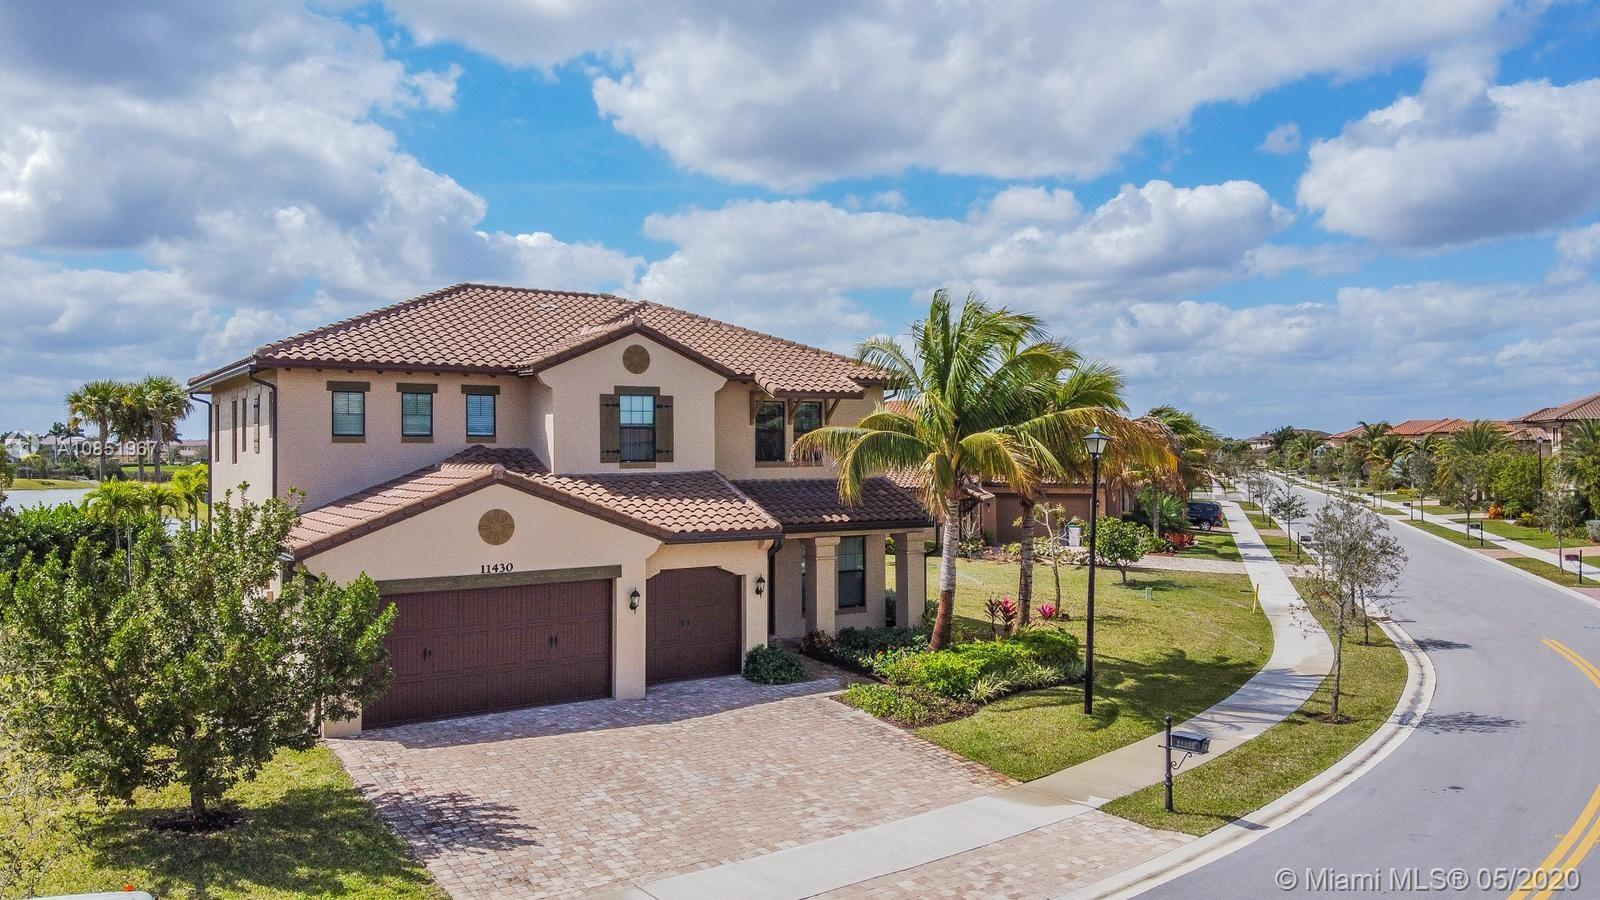 BREATHTAKING MASTERPIECE! WITH 5 BEDROOMS AND 5.5 BATHROOMS WITH AN INCREDIBLE LAKE VIEW. LOCATED IN A QUIET SECTION OF HERON BAY, IN A LARGE LOT WITH MORE THAN 15,000 SQFT. 